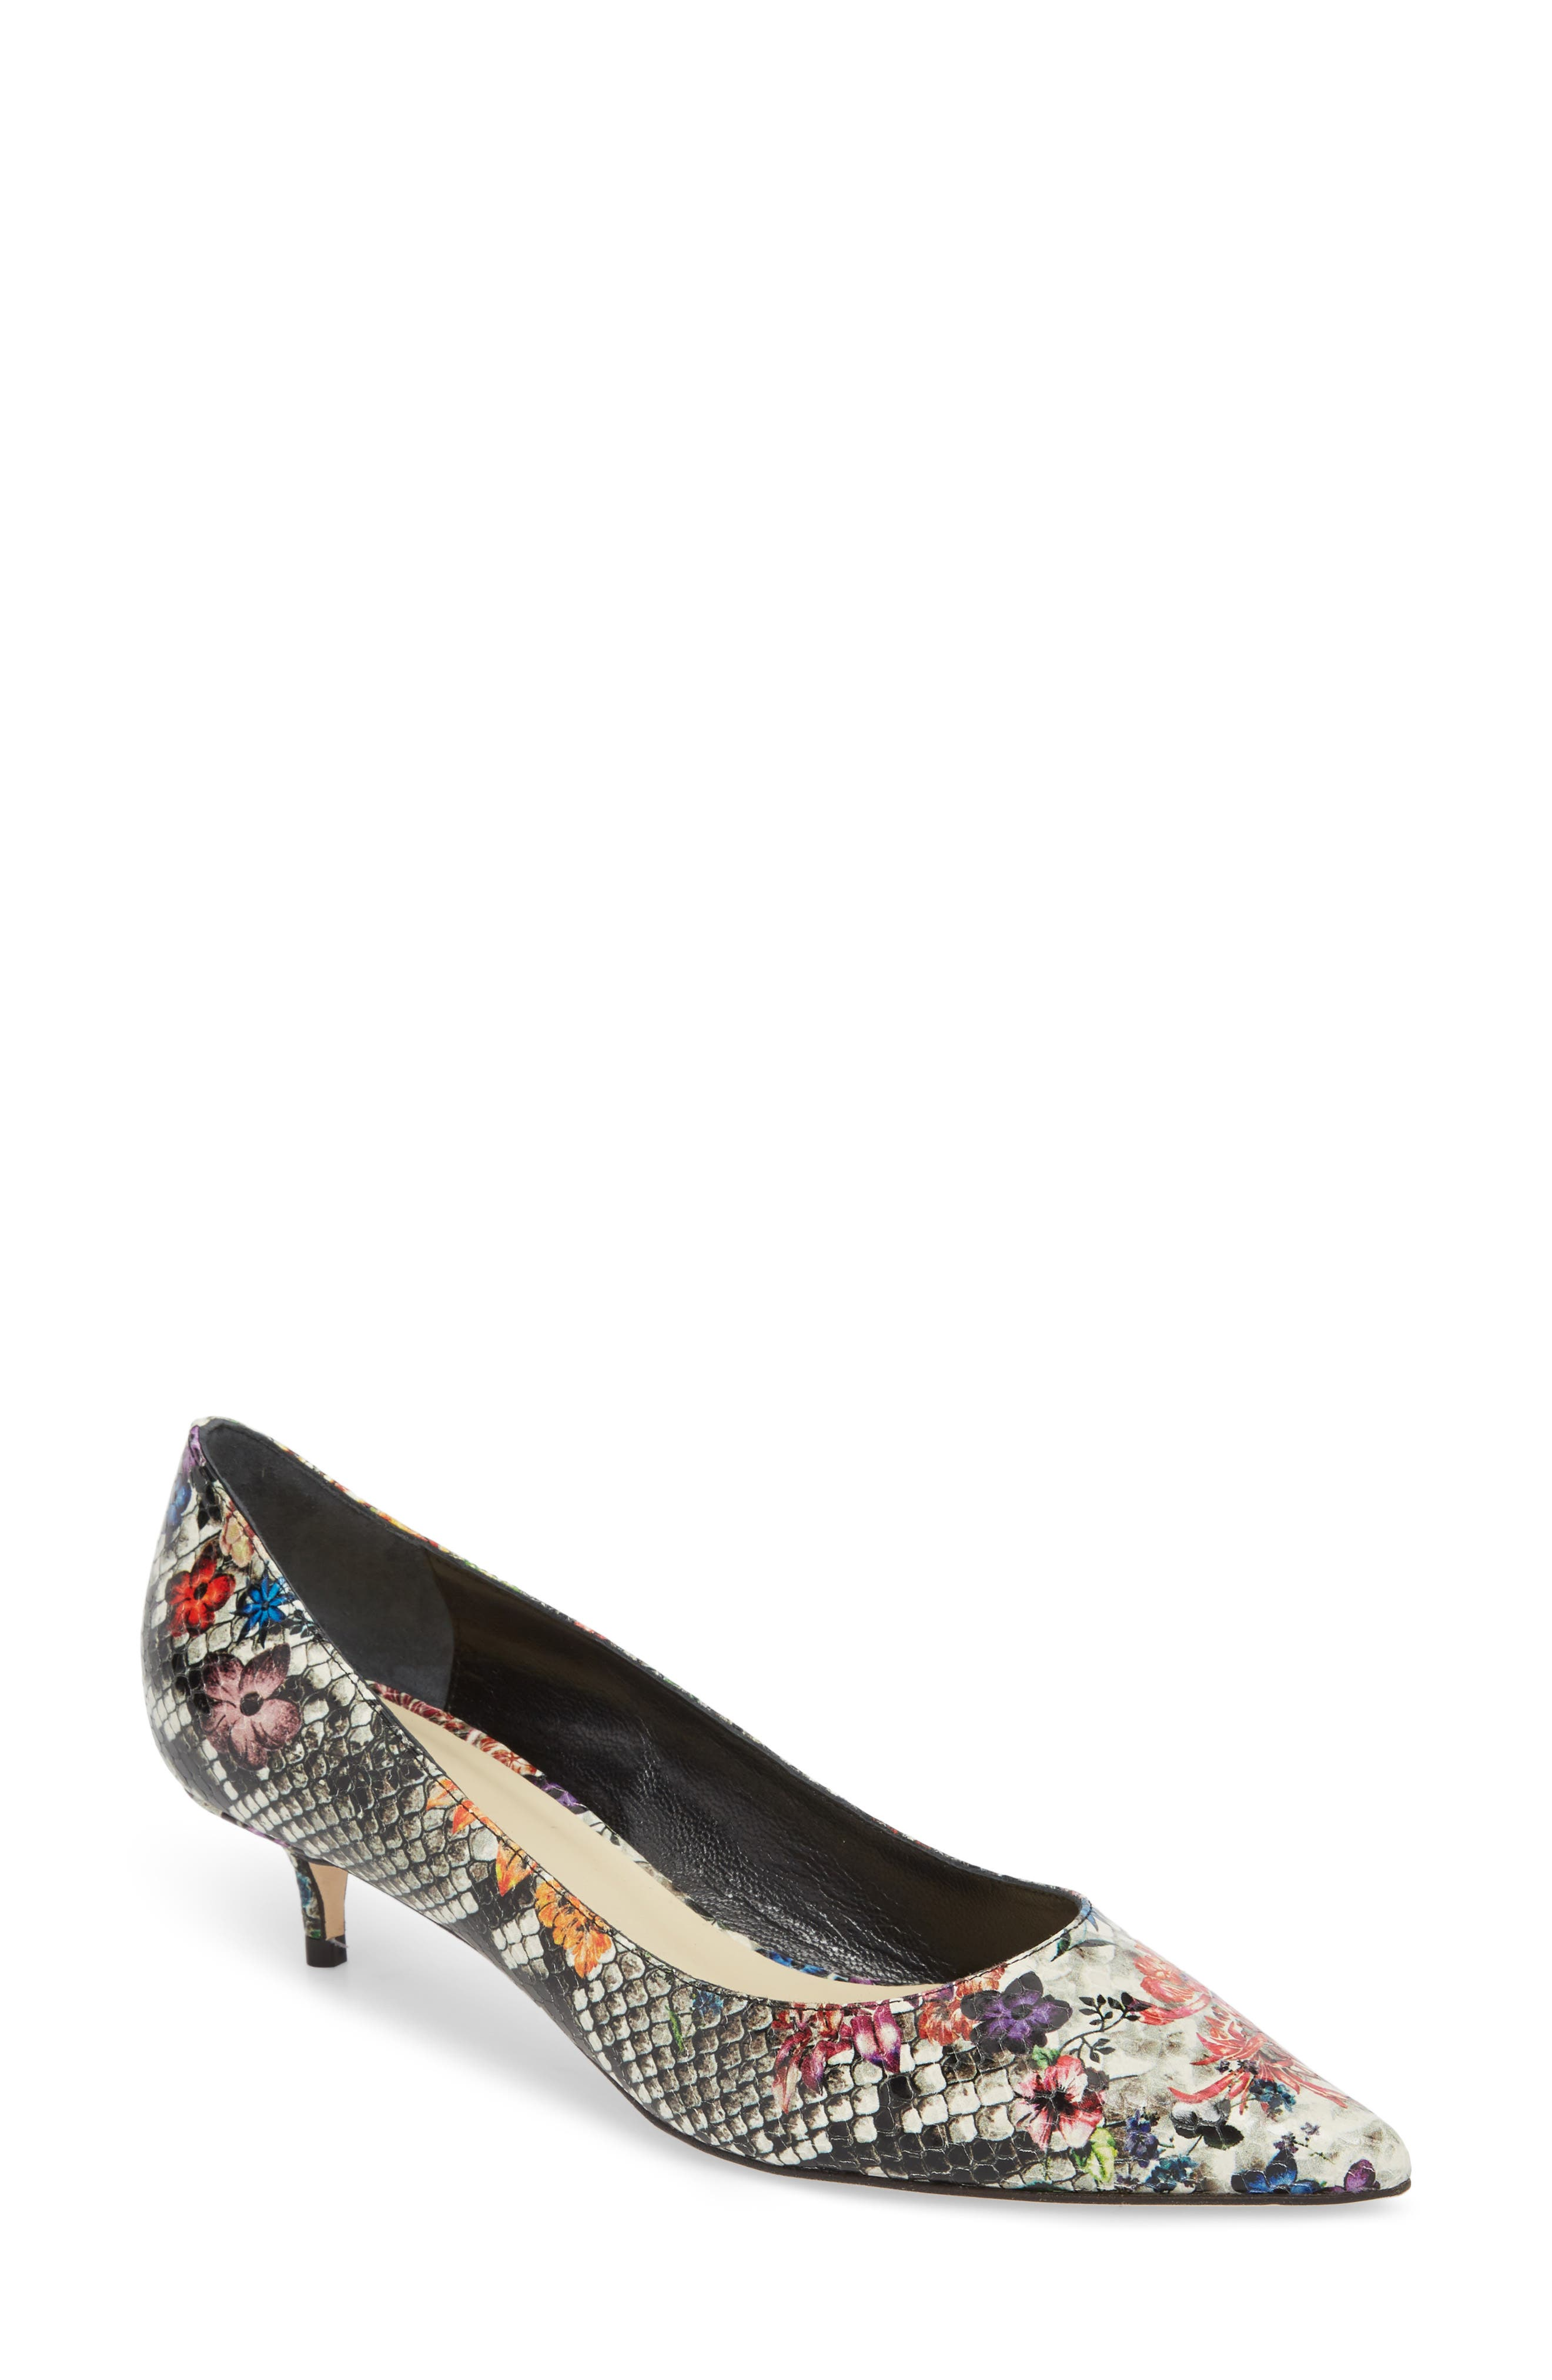 Butter Born Pointy Toe Pump,                         Main,                         color, Flower Stamp Snake